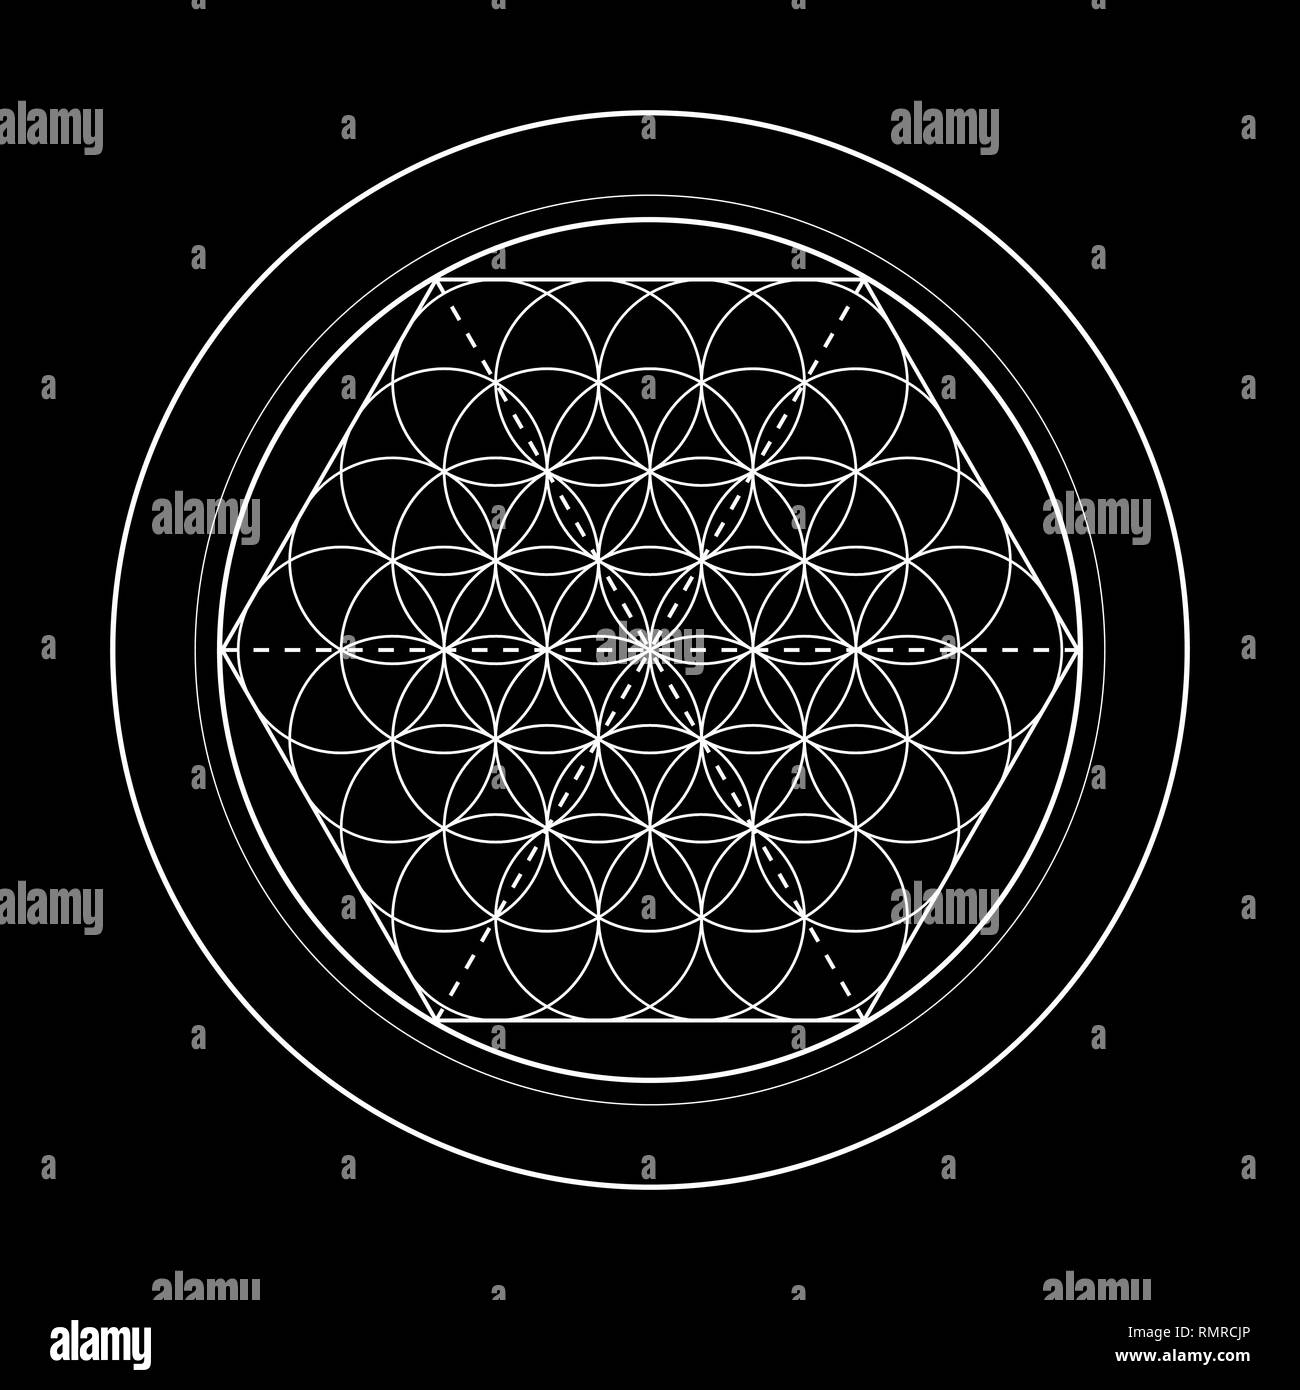 flower of life vector image, sacred geometry symbol on black background - Stock Image